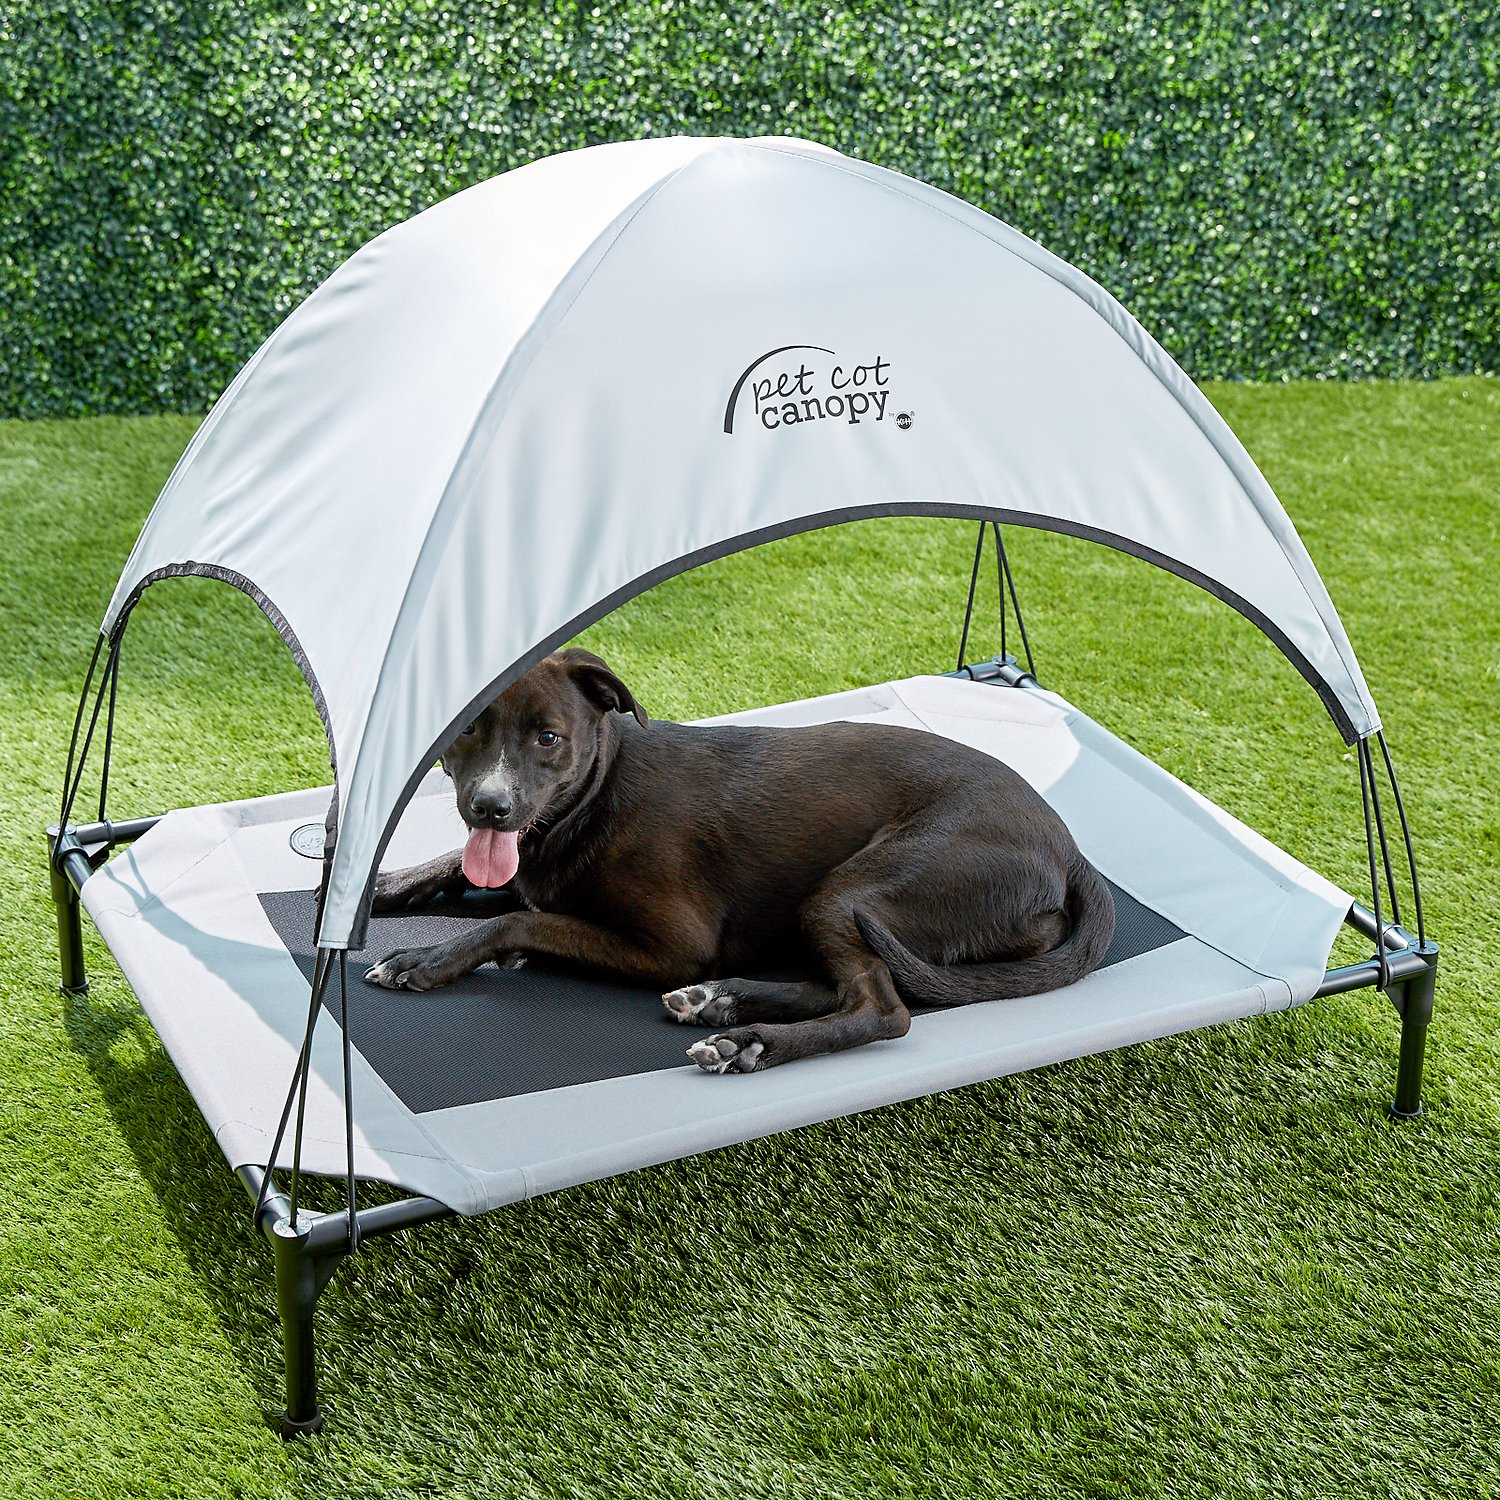 video & Ku0026H Pet Products Pet Cot Canopy Gray Large - Chewy.com